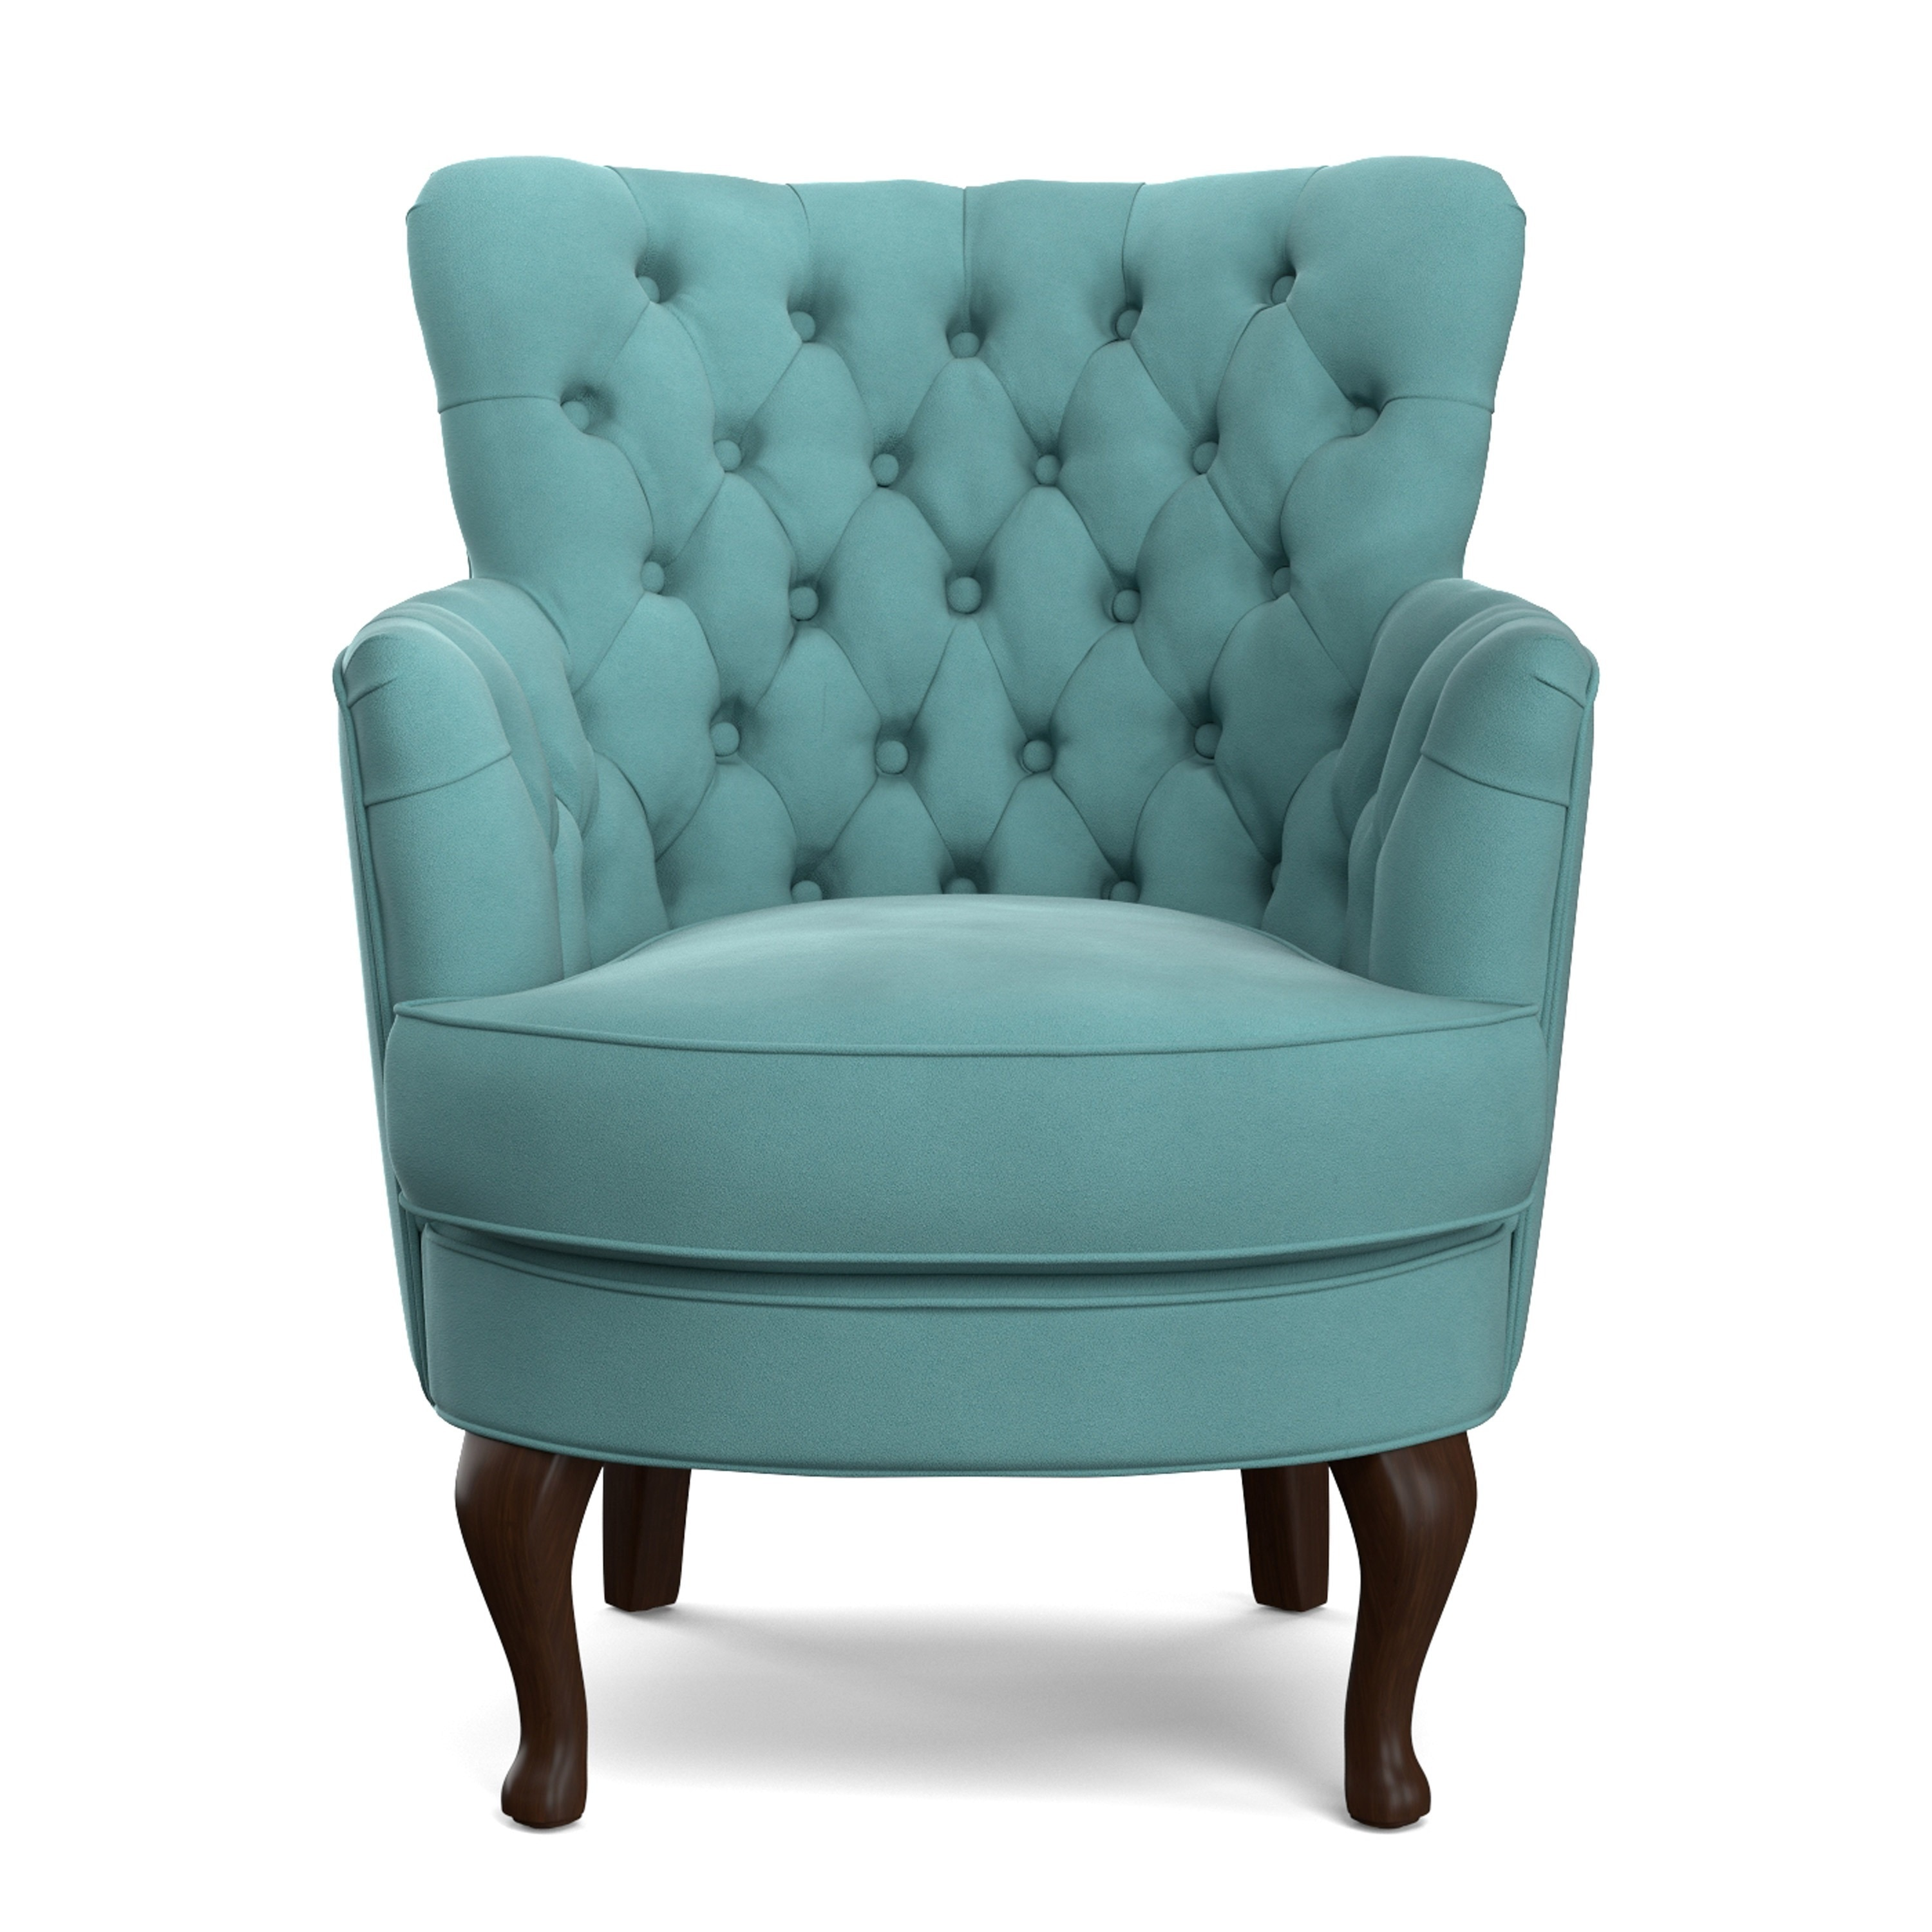 Superior Handy Living Priscilla Turquoise Blue Velvet Petite Arm Chair   Free  Shipping Today   Overstock.com   17756161